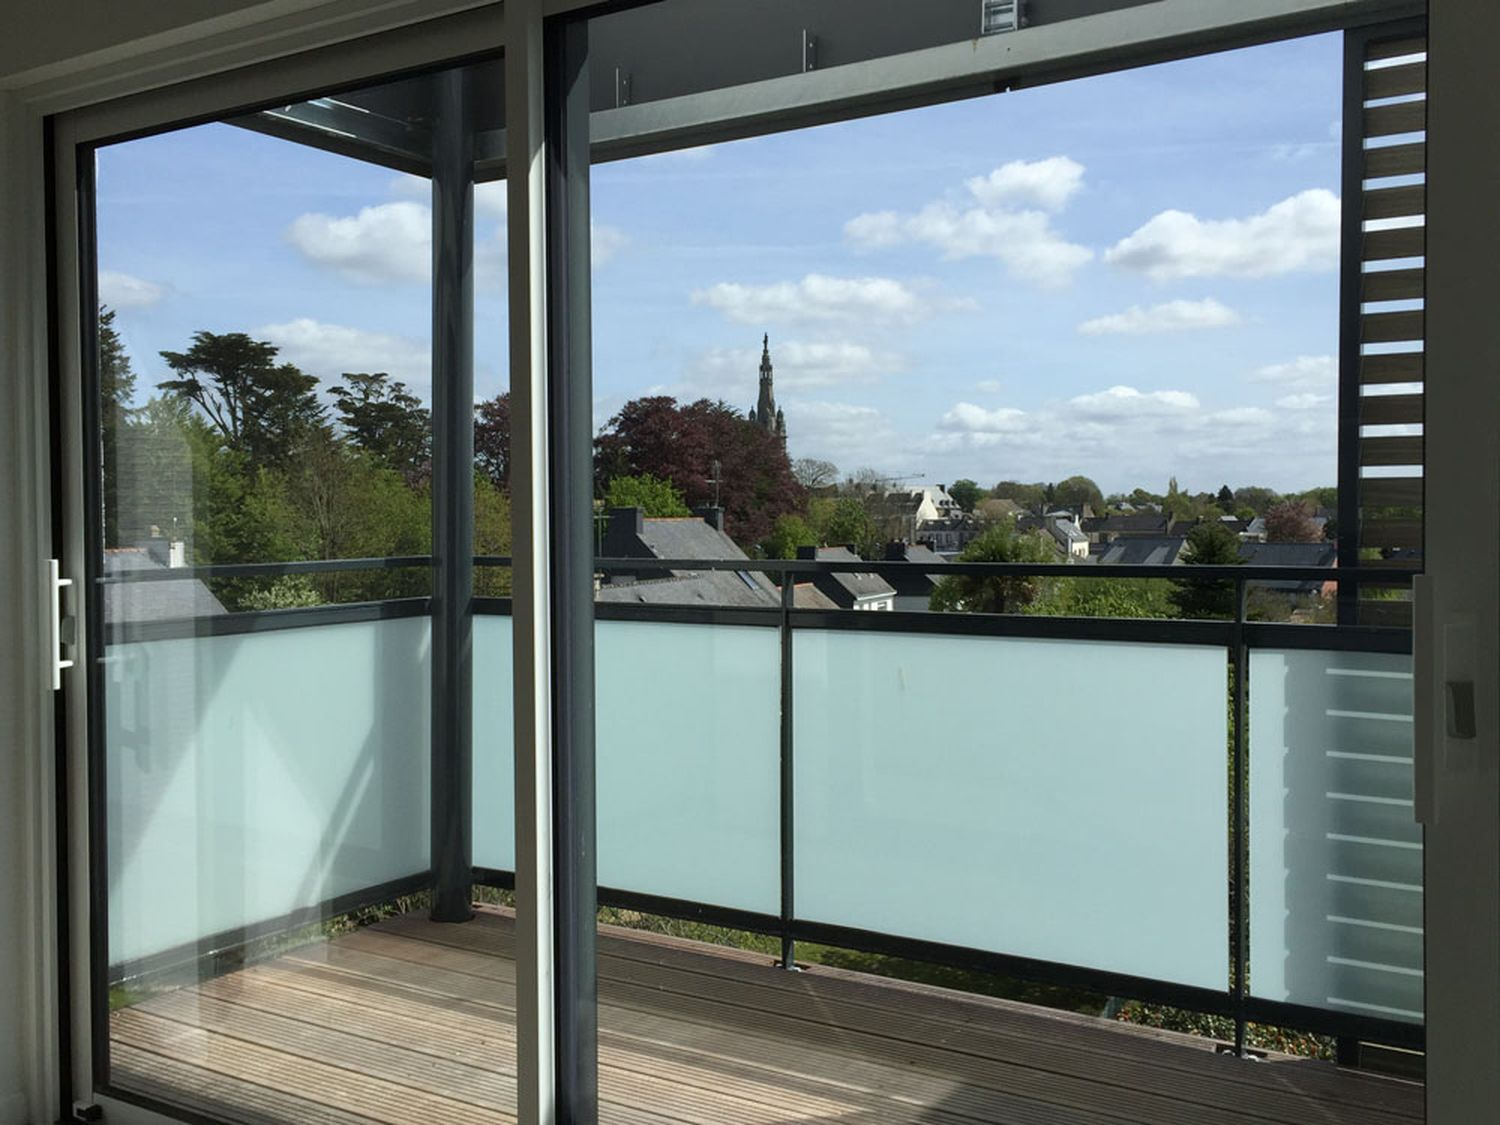 Rénovation-transformation-dun-hotel-en-residence-service-à-Sainte-Anne-dAuray-Architecte-Vannes-13